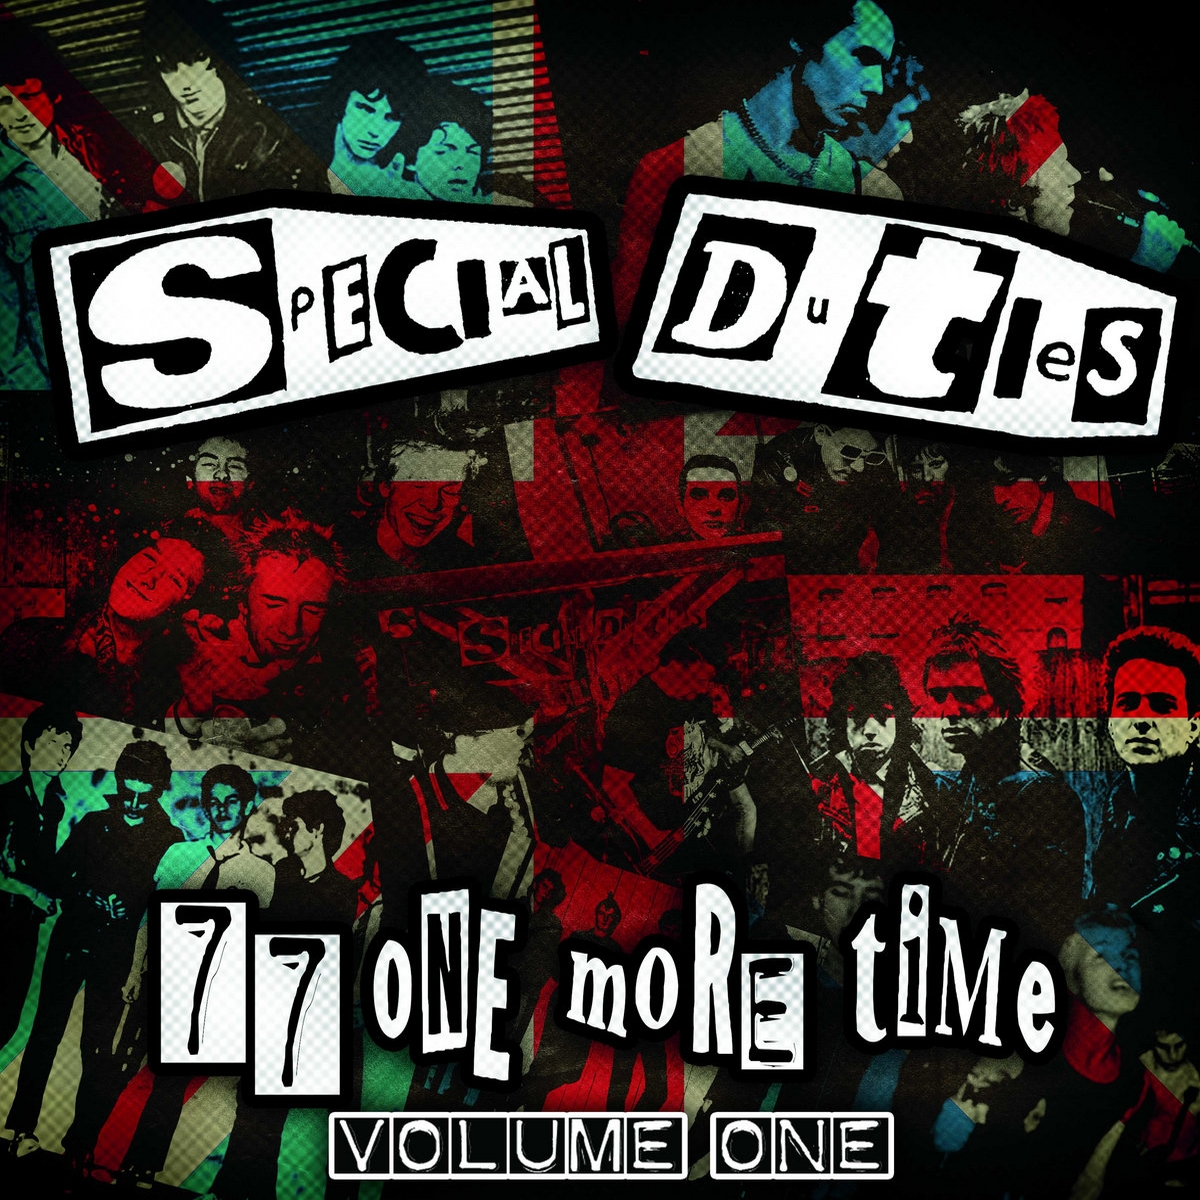 77_one_more_time_volume_one